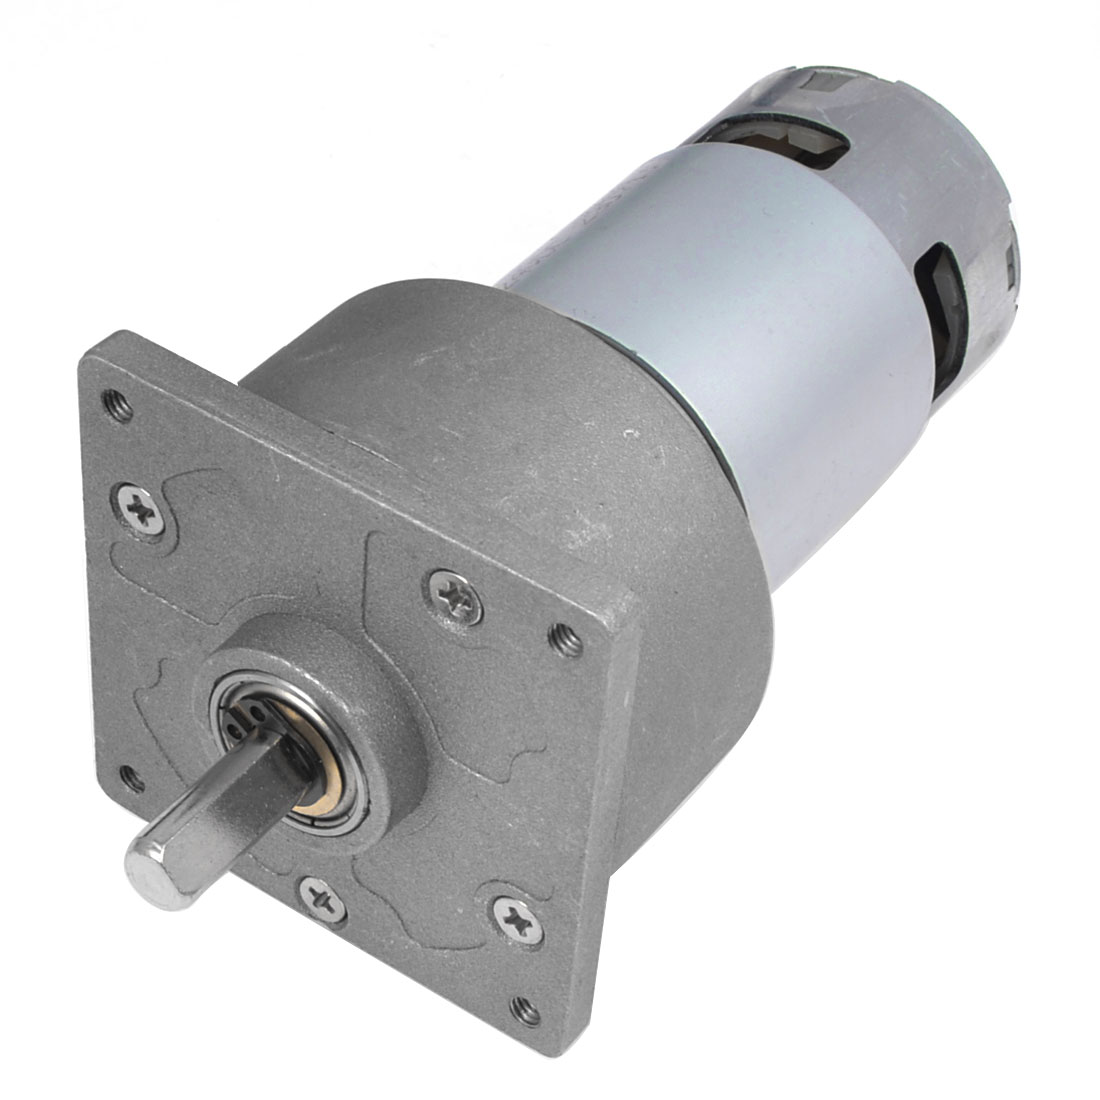 24V 45RPM Rotate Speed 2 Pole Connector 8mm Dia Shaft DC Geared Box Motor